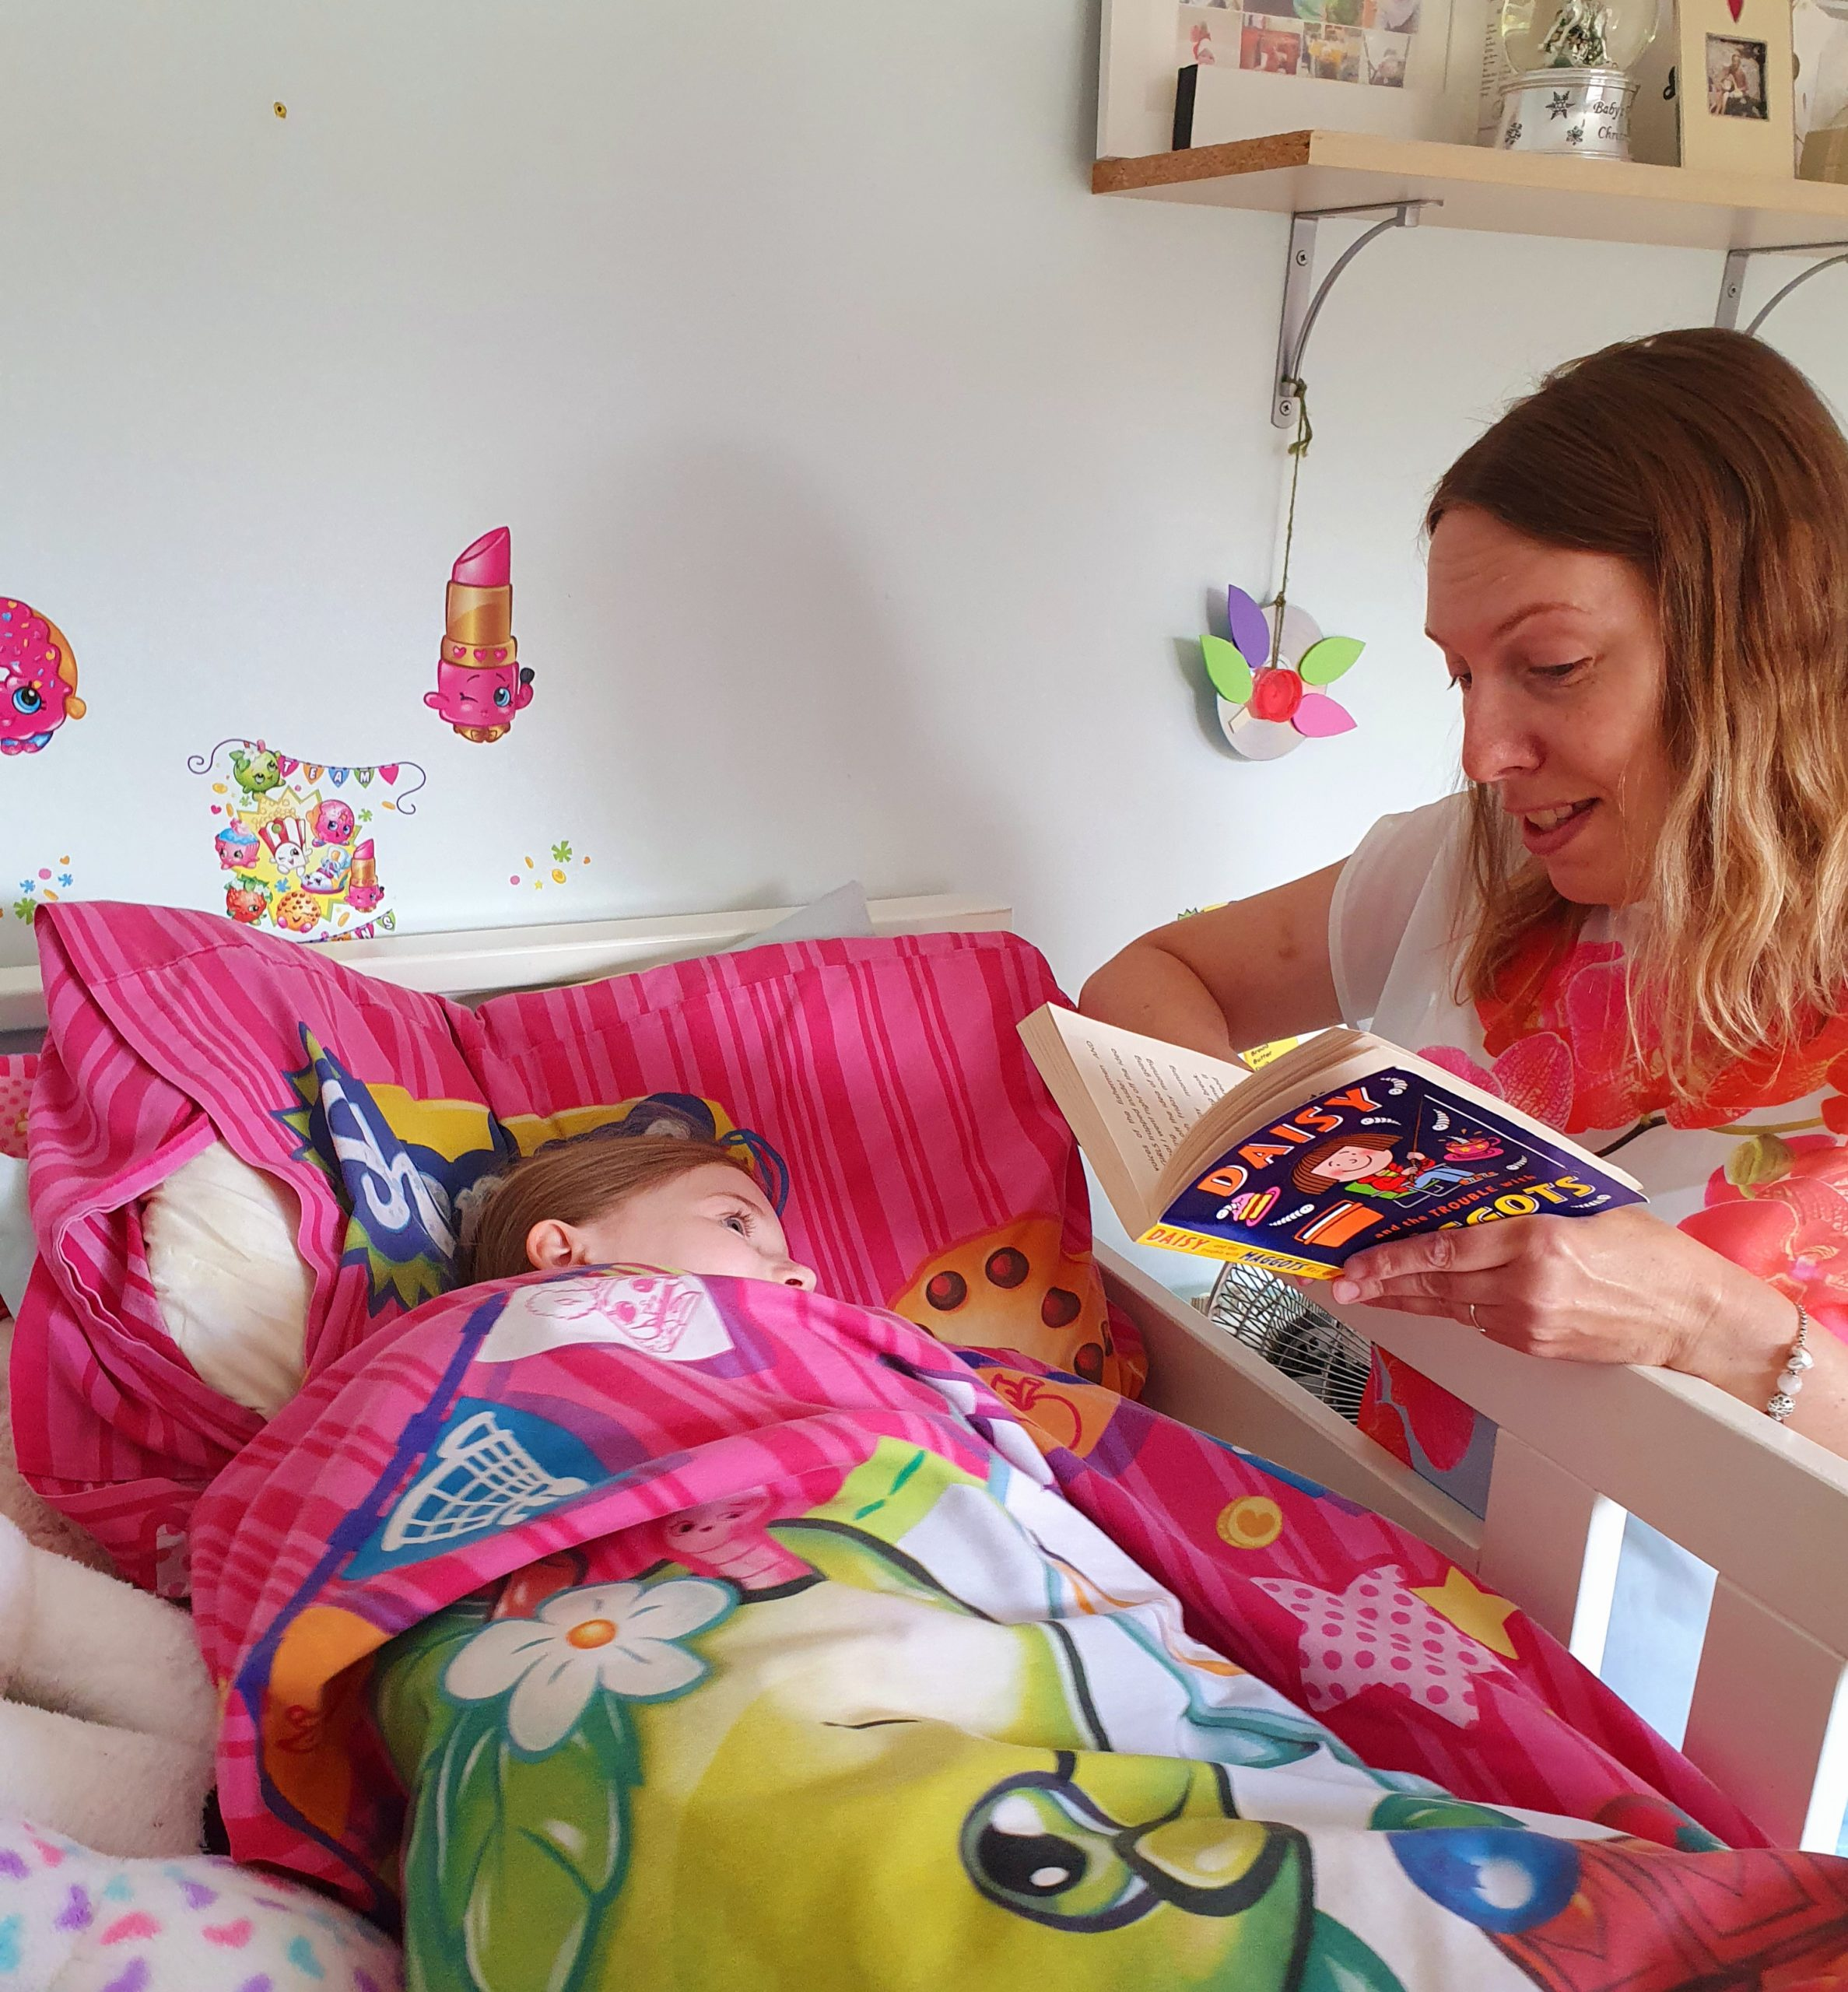 Mum reading a story to her child in bed